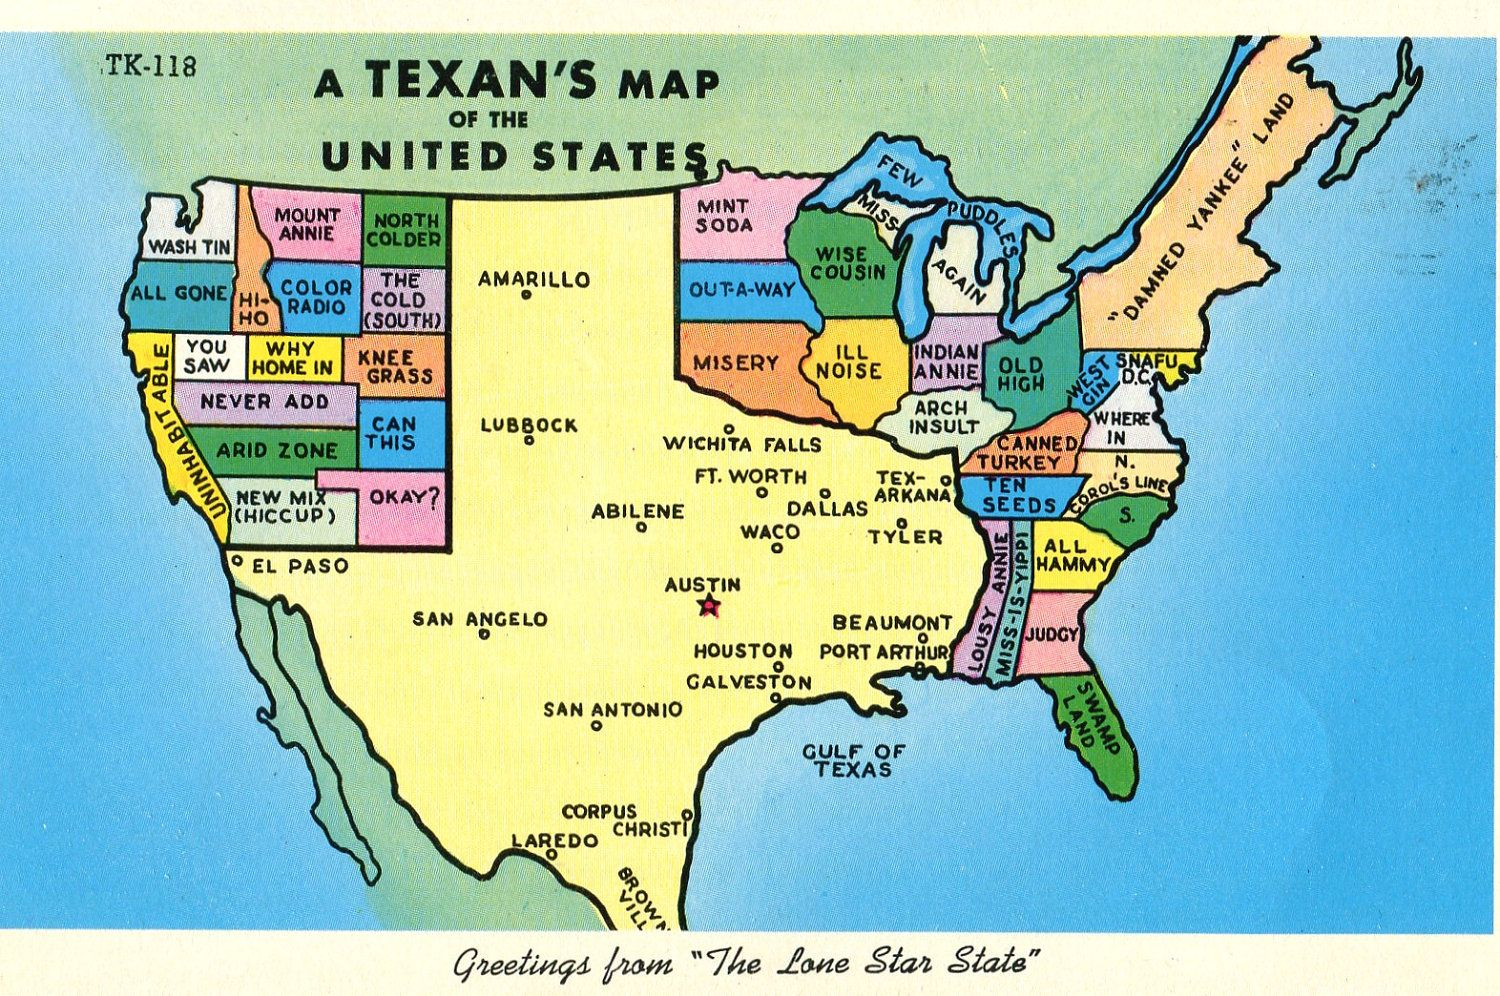 texans map of the united states A Texan S Map Of The United States Haha I Remember This Postcard